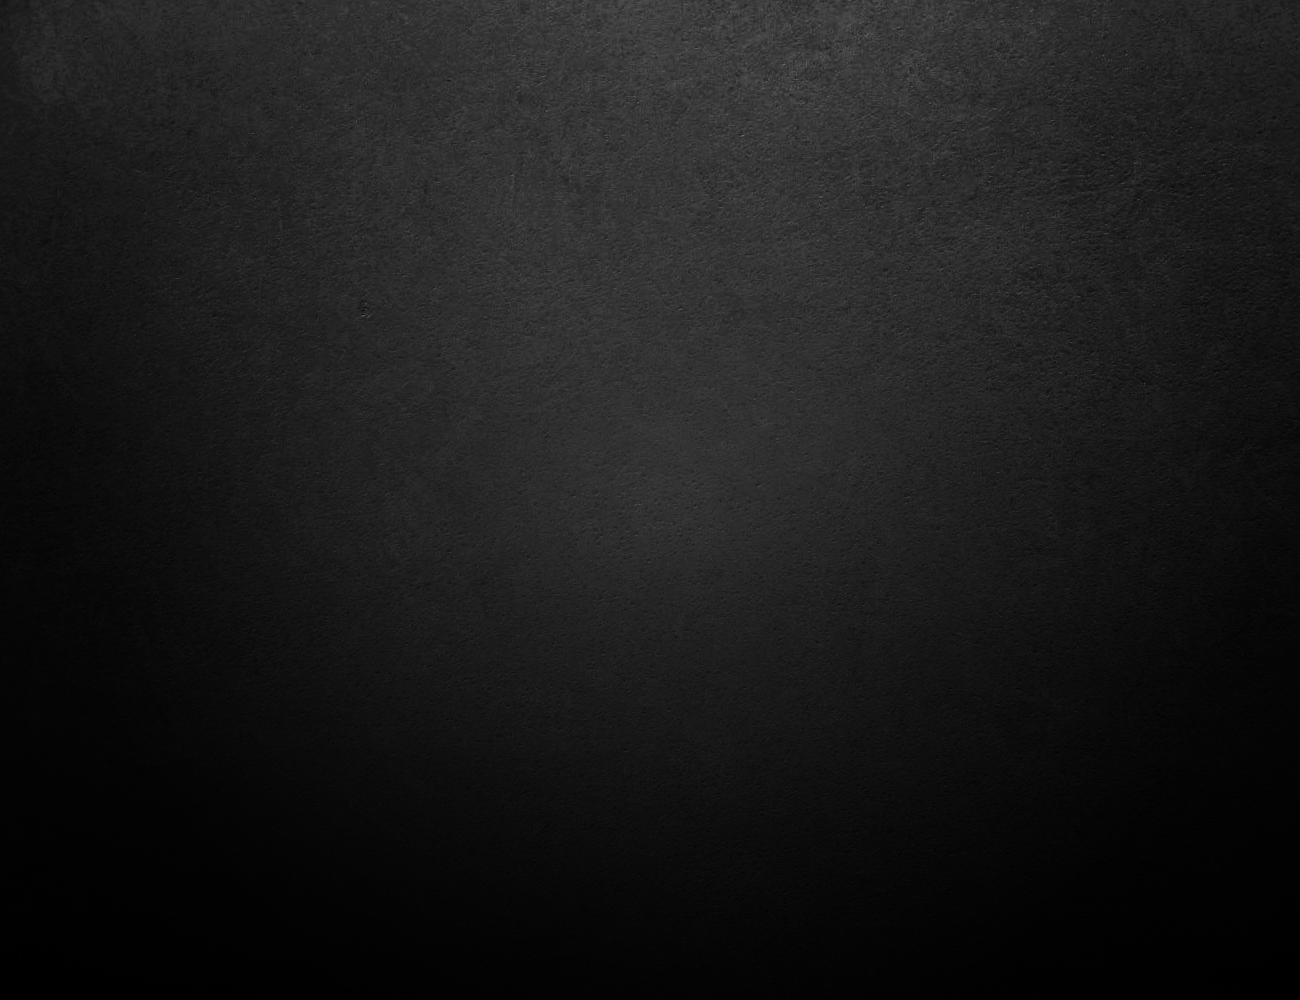 Black Gradient Background Texture galleryhipcom   The 1300x1000